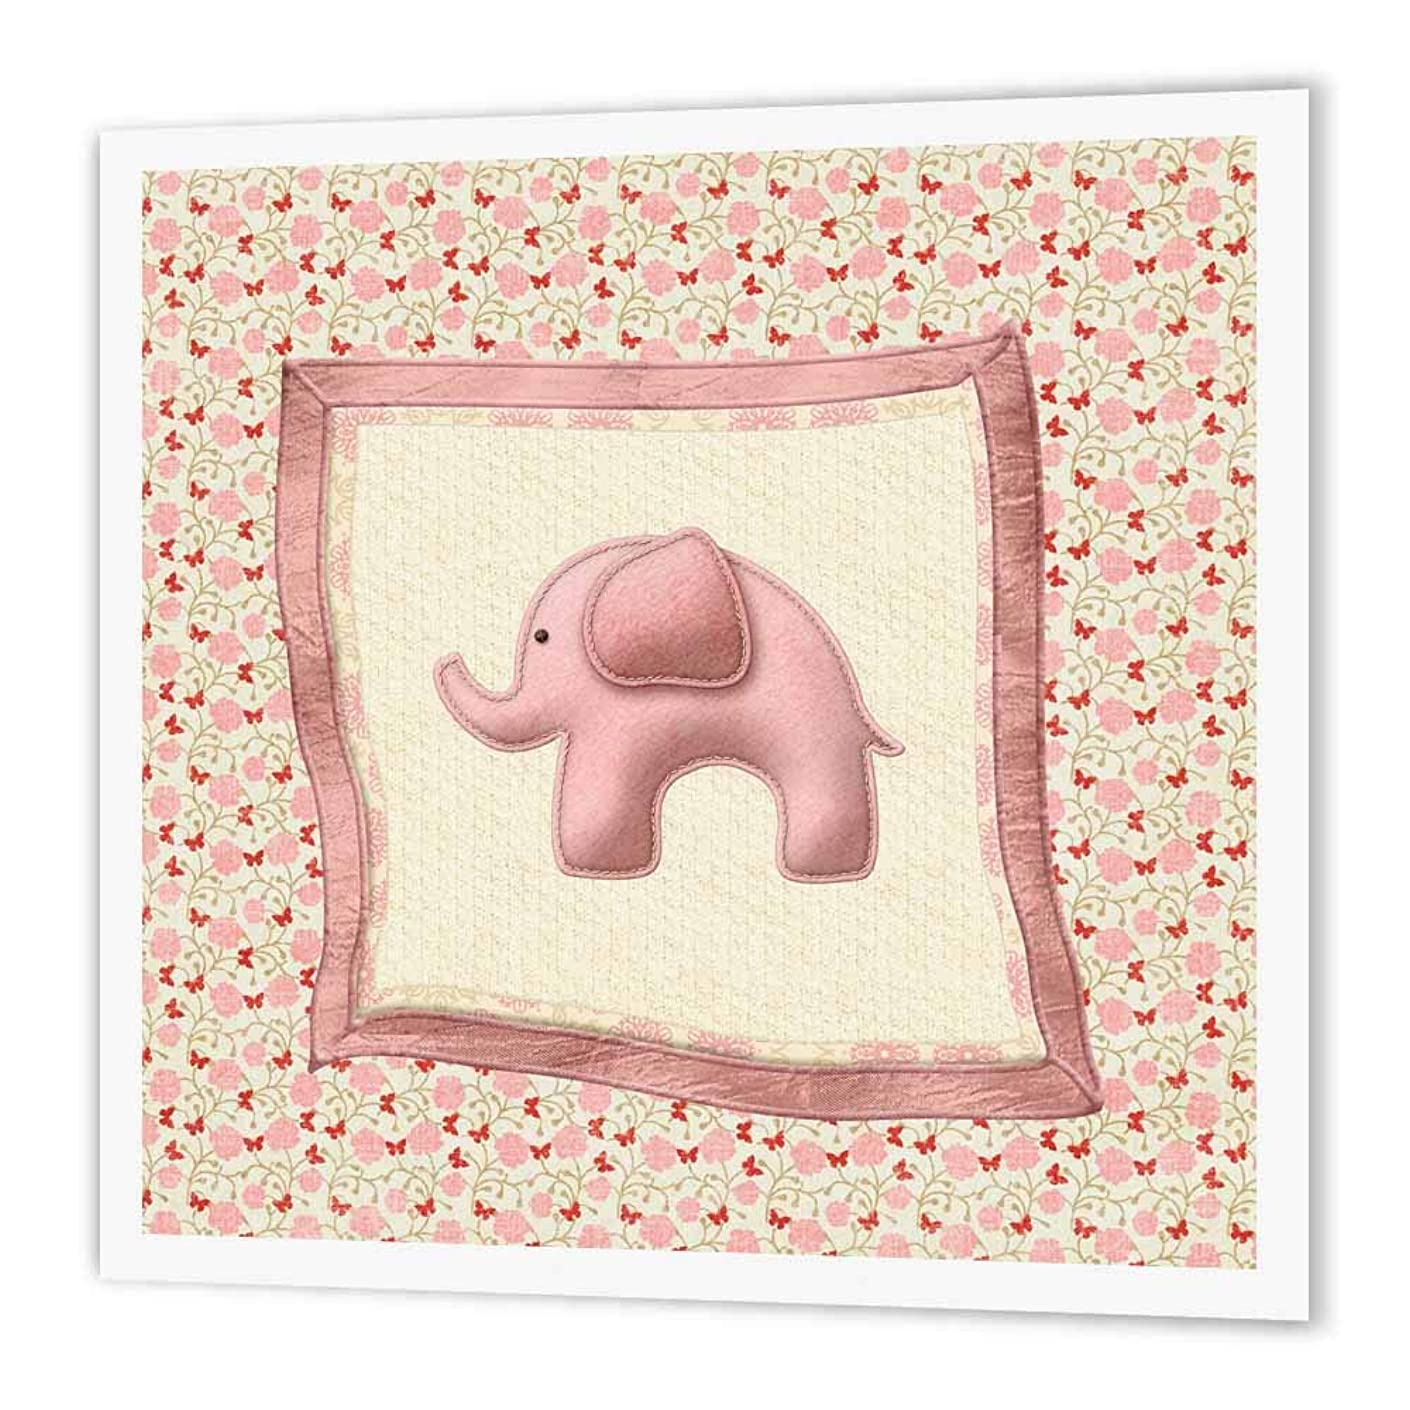 3dRose ht_192552_2 Baby Elephant Blanket with Butterflies & Flowers, Pink Iron on Heat Transfer Paper for White Material, 6 by 6